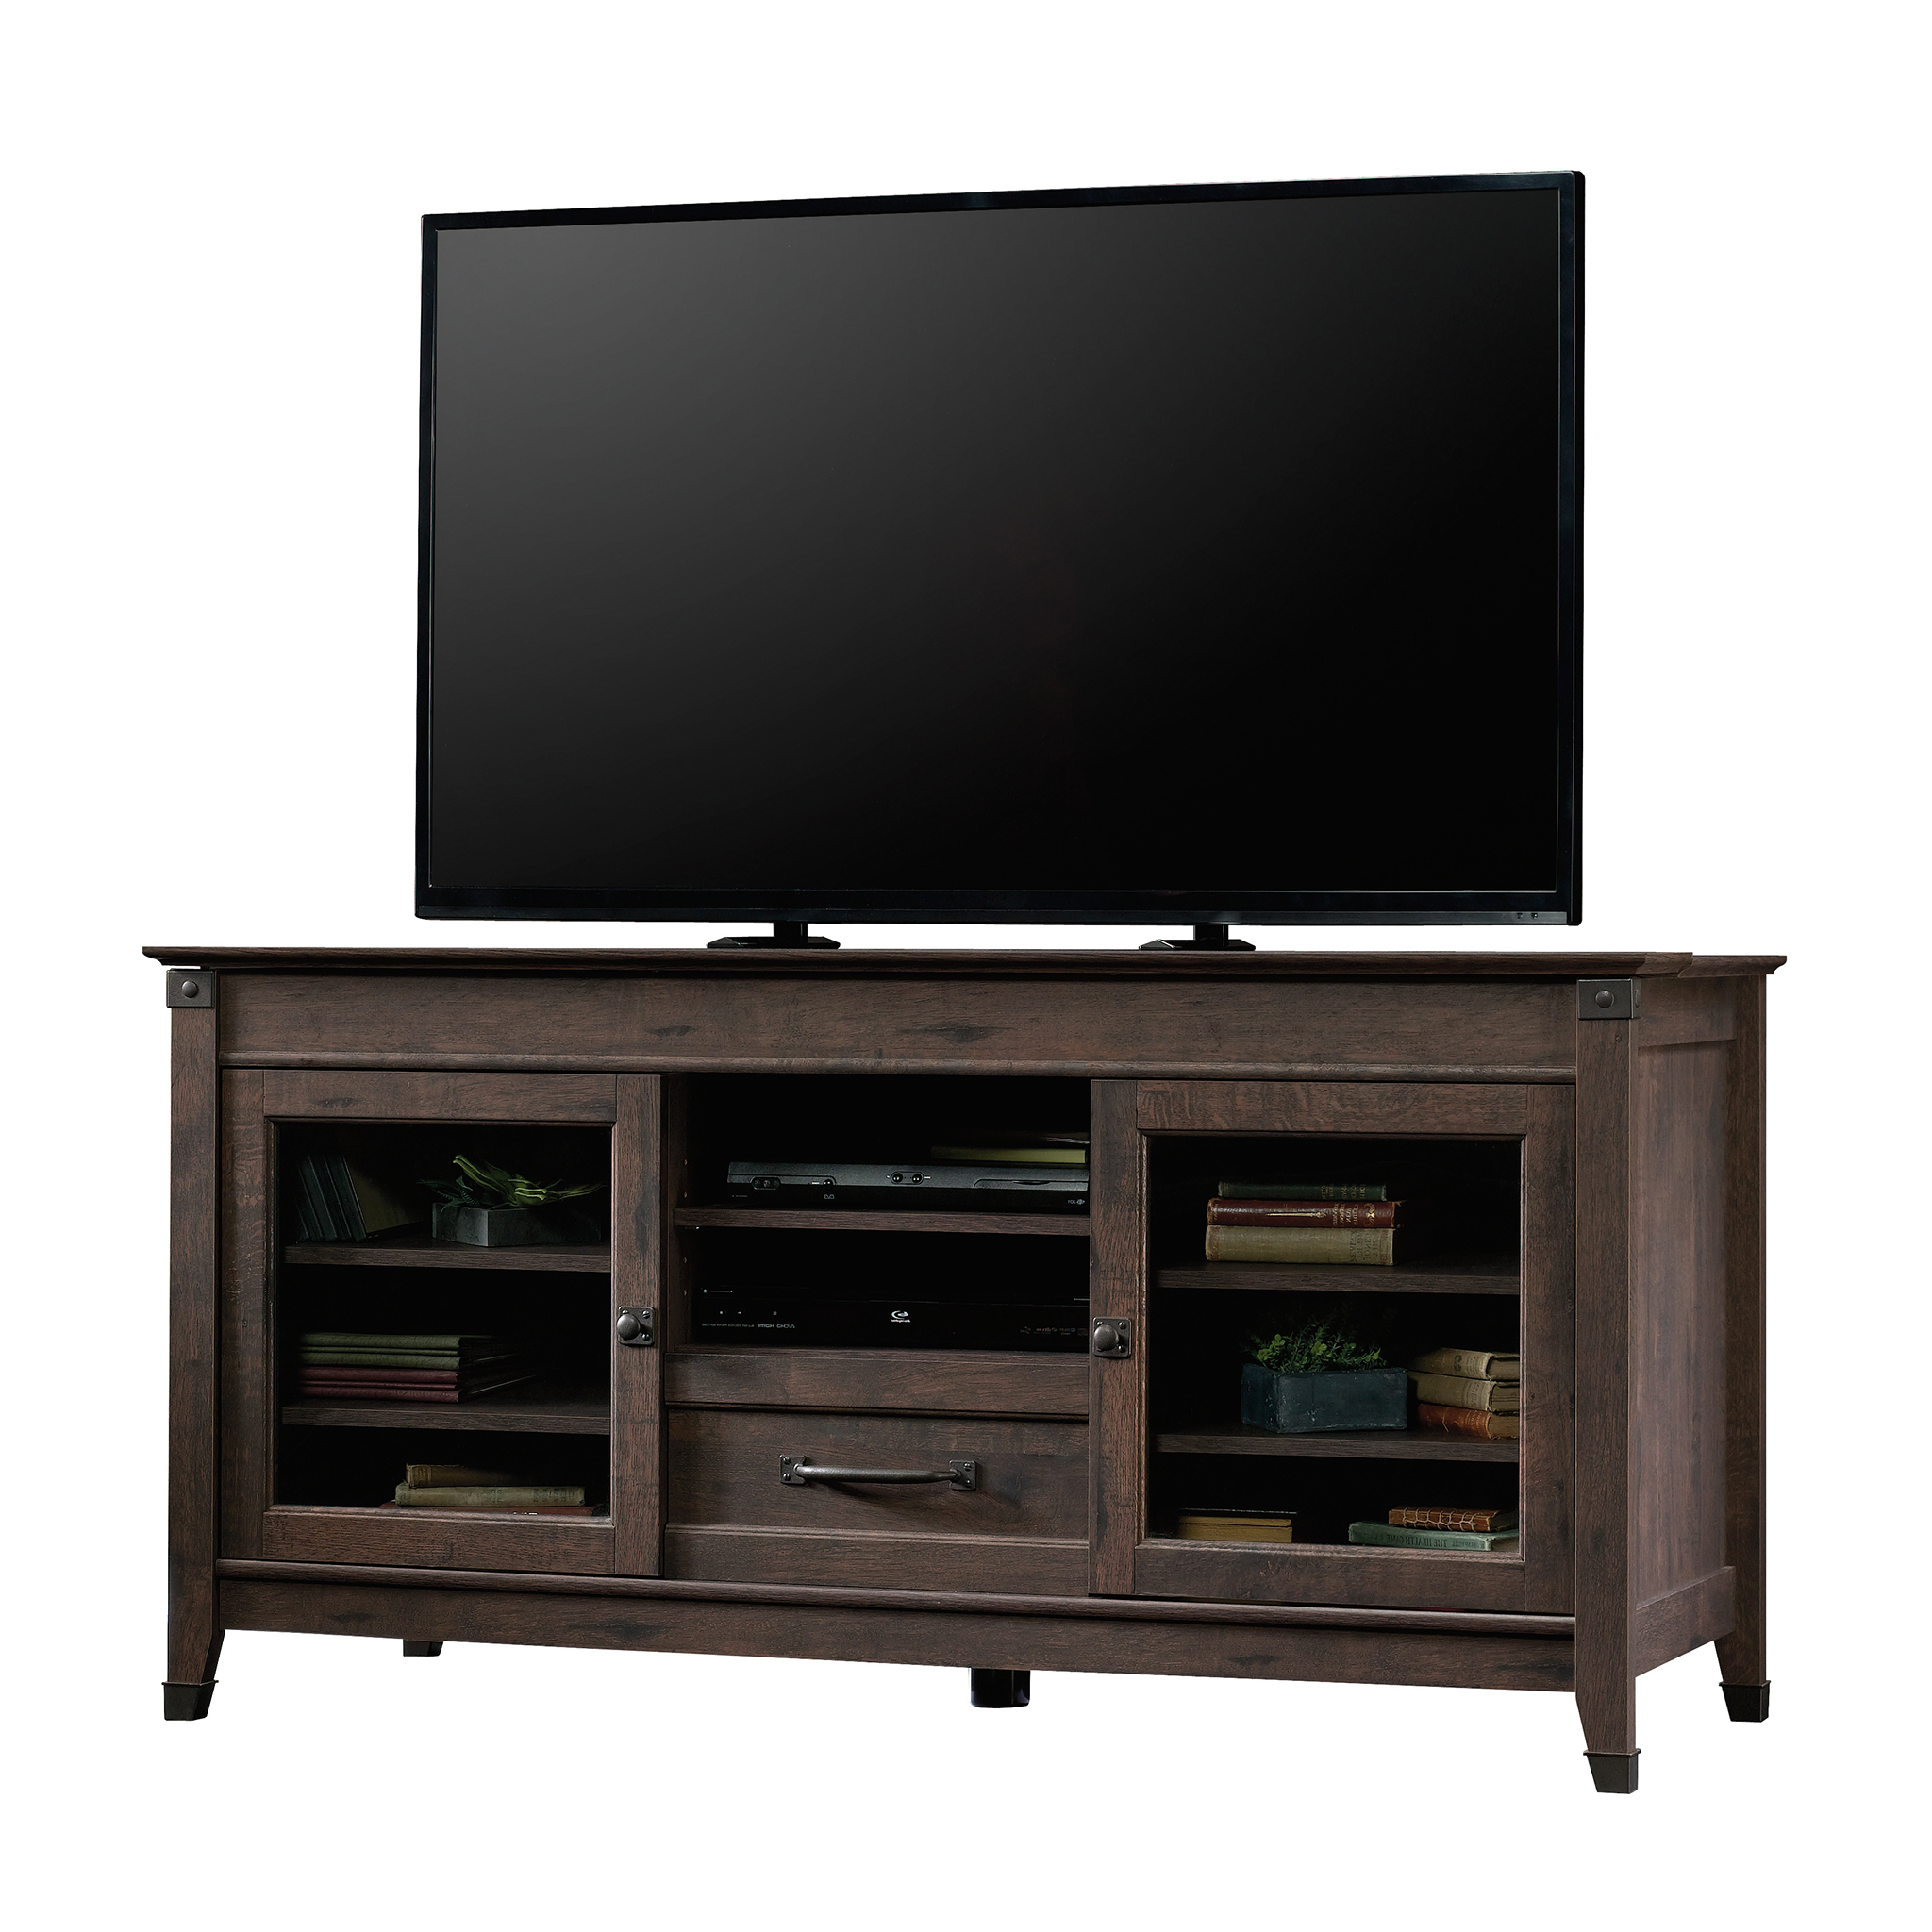 """Sauder Carson Forge Tv Stand For Tvs Up To 60"""", Coffee Oak Inside 60"""" Corner Tv Stands Washed Oak (View 8 of 20)"""